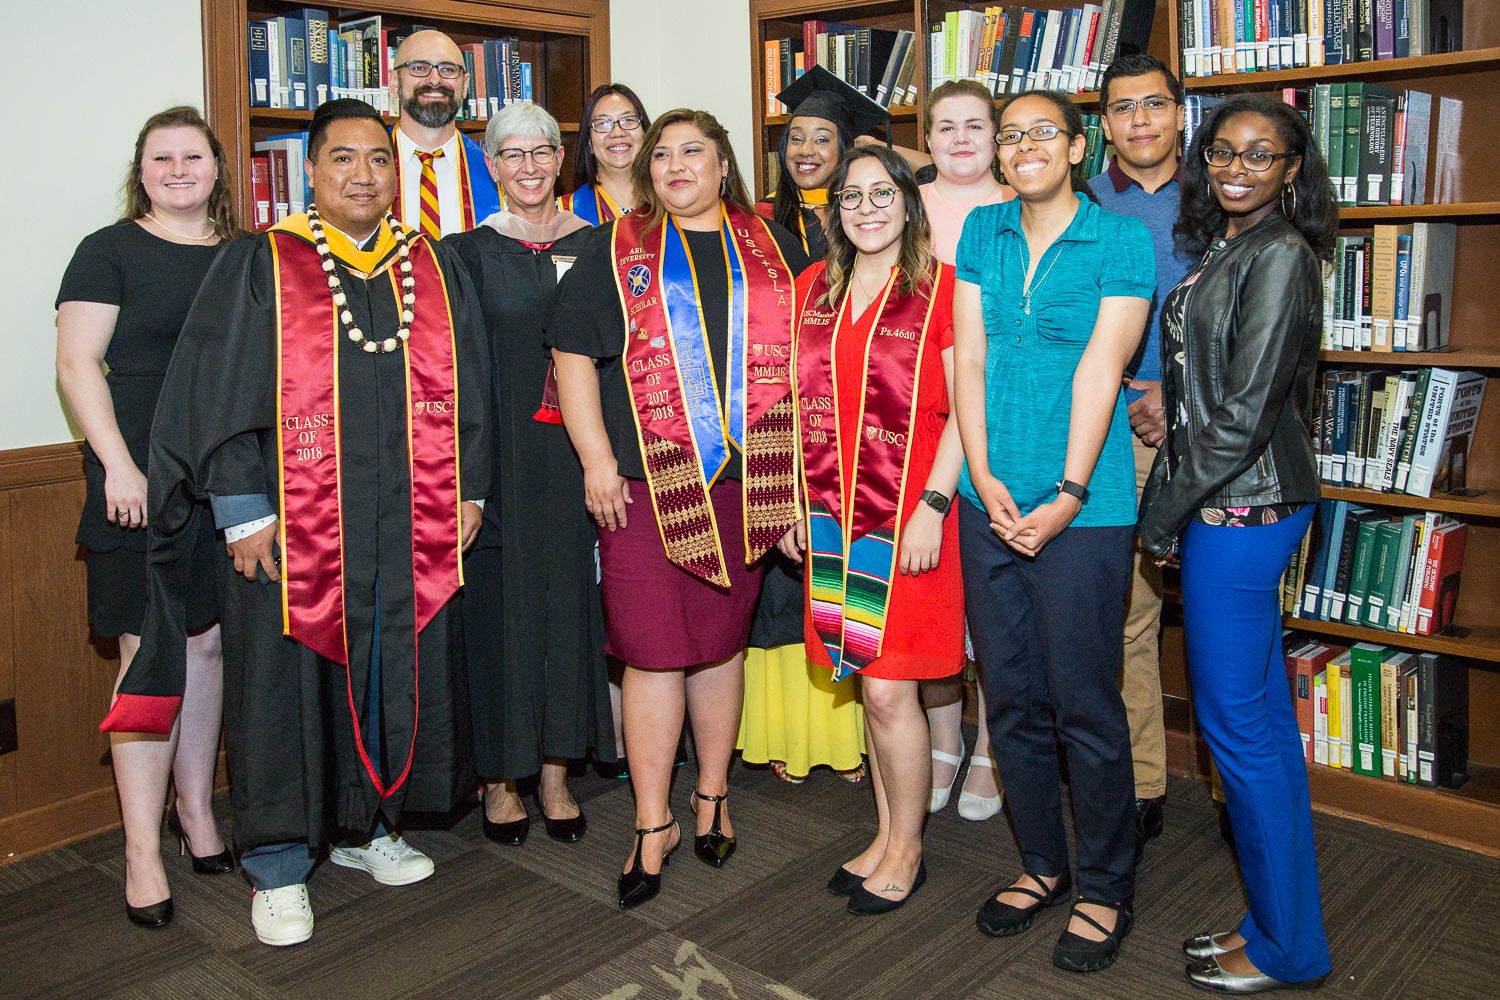 USC Libraries Dean Catherine Quinlan with graduates of the USC Master of Management in Library and Information Science program